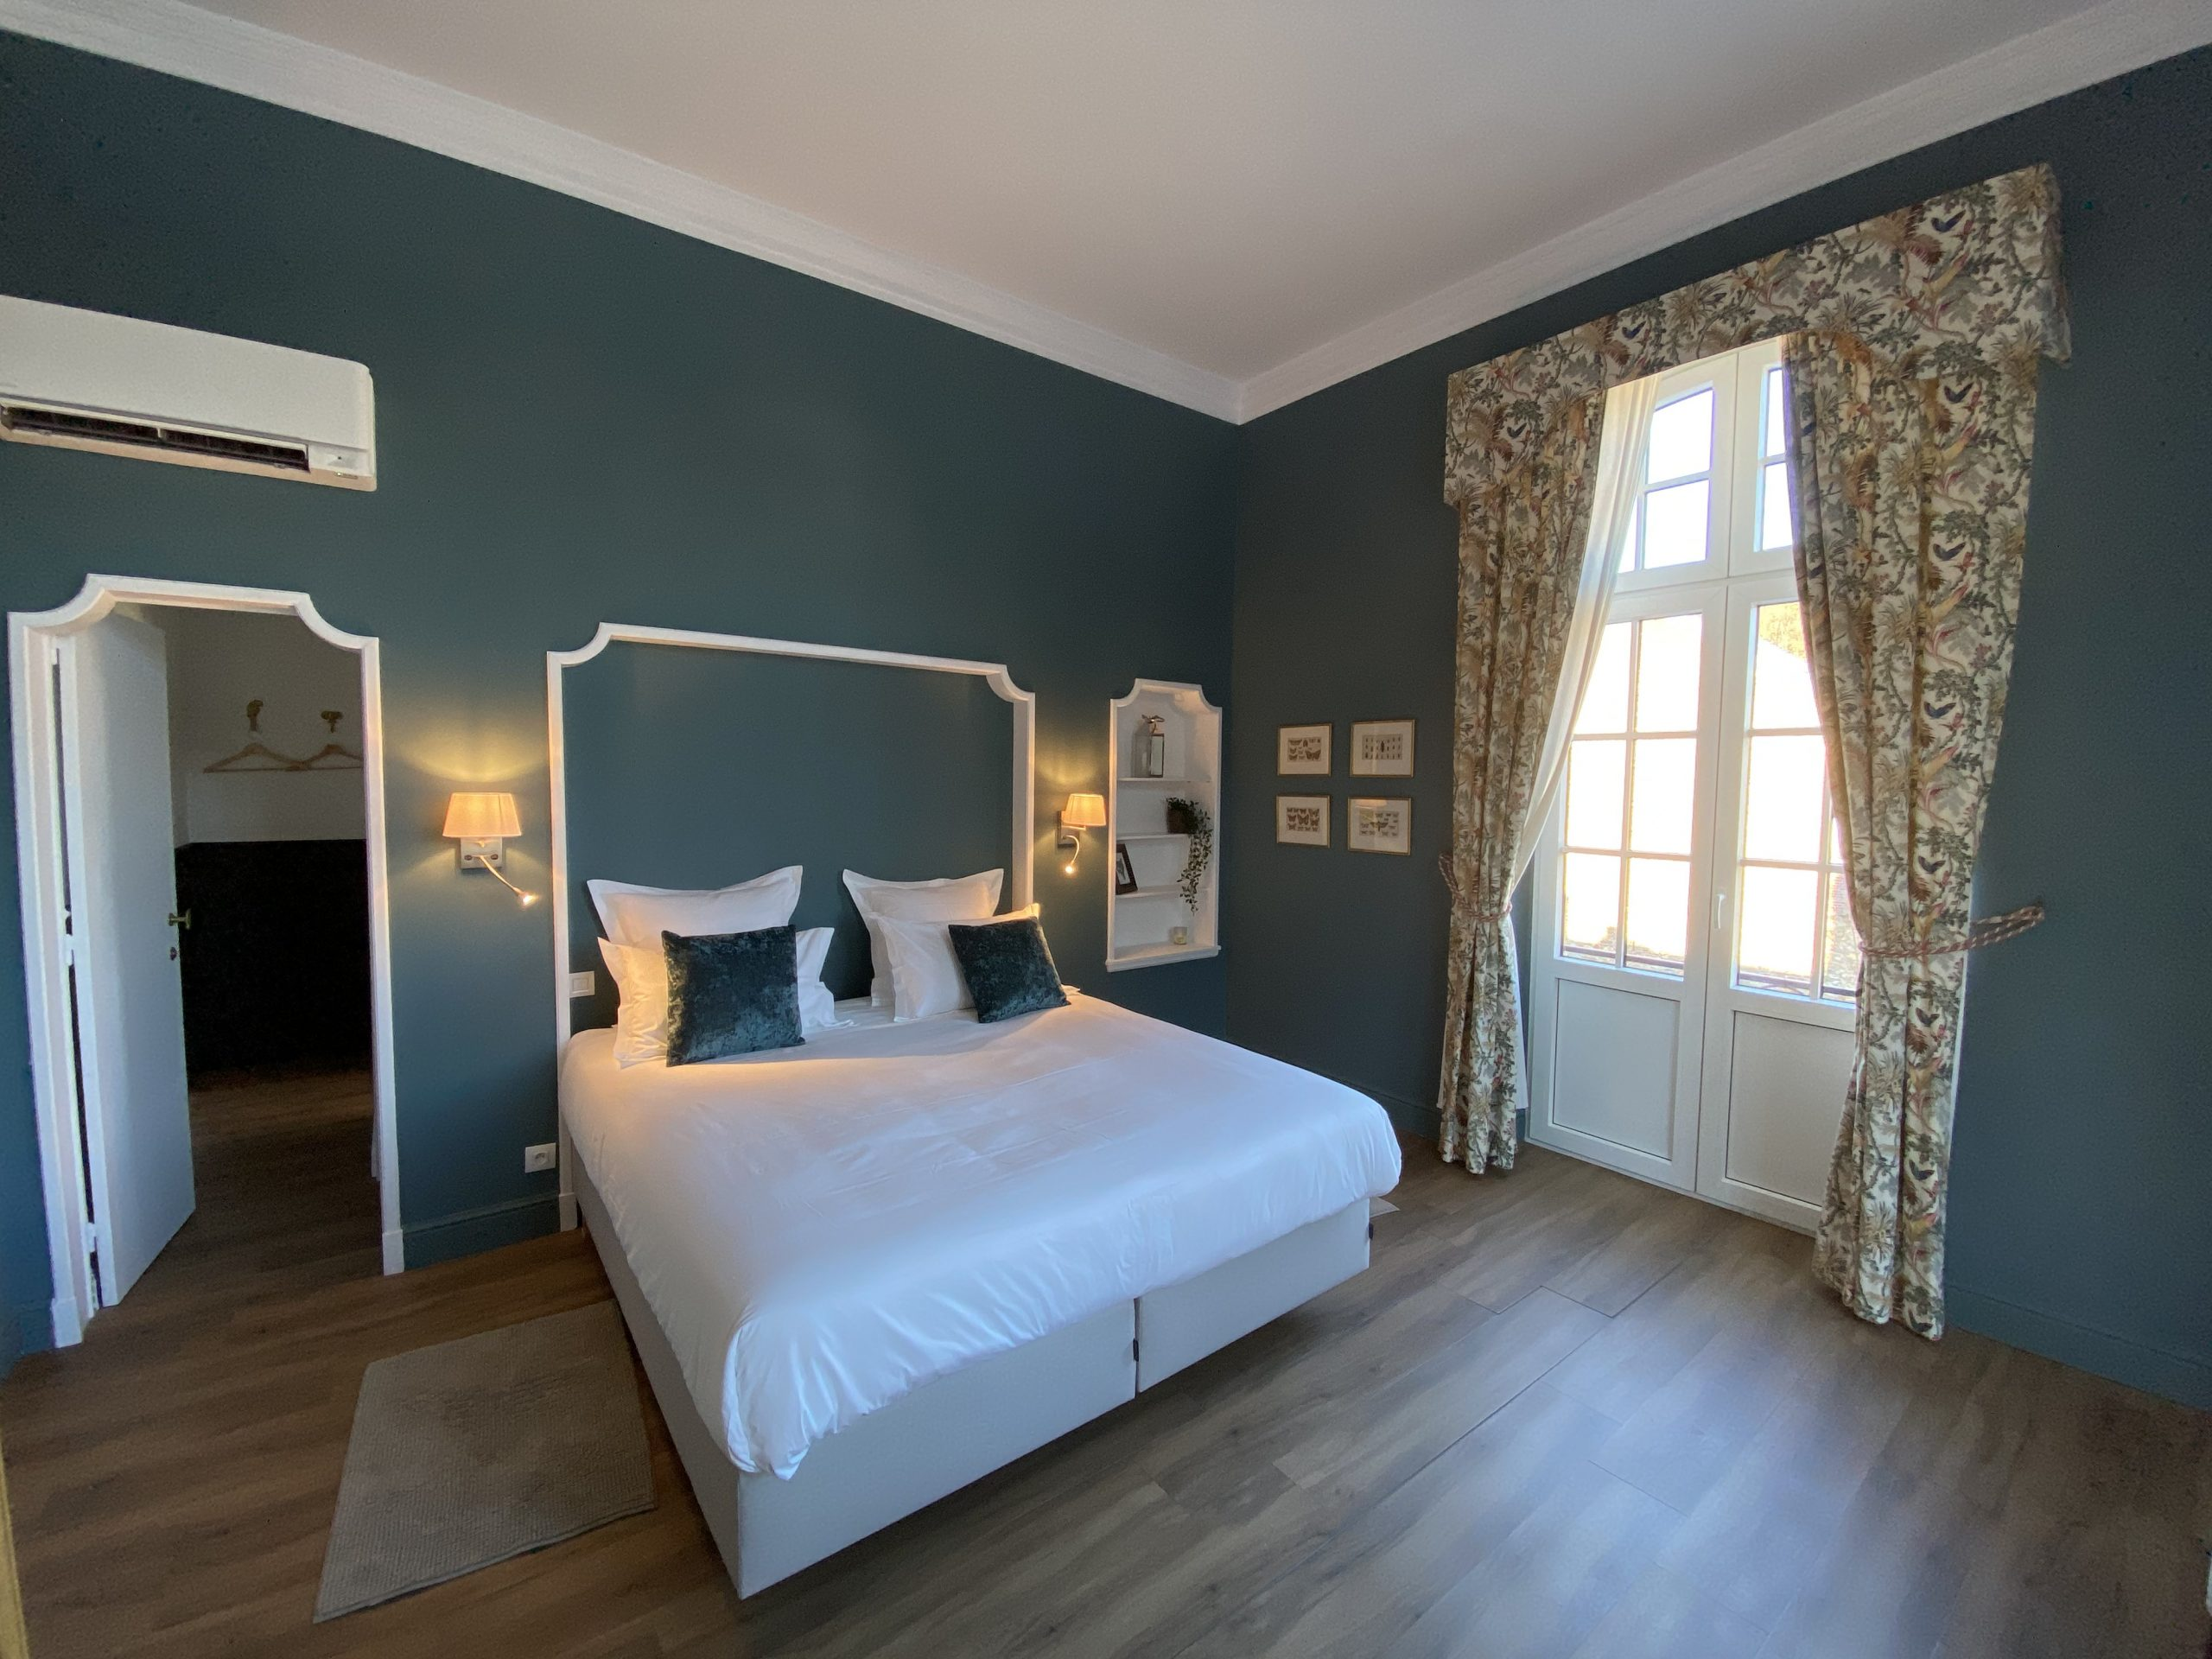 offenbach-room-overview